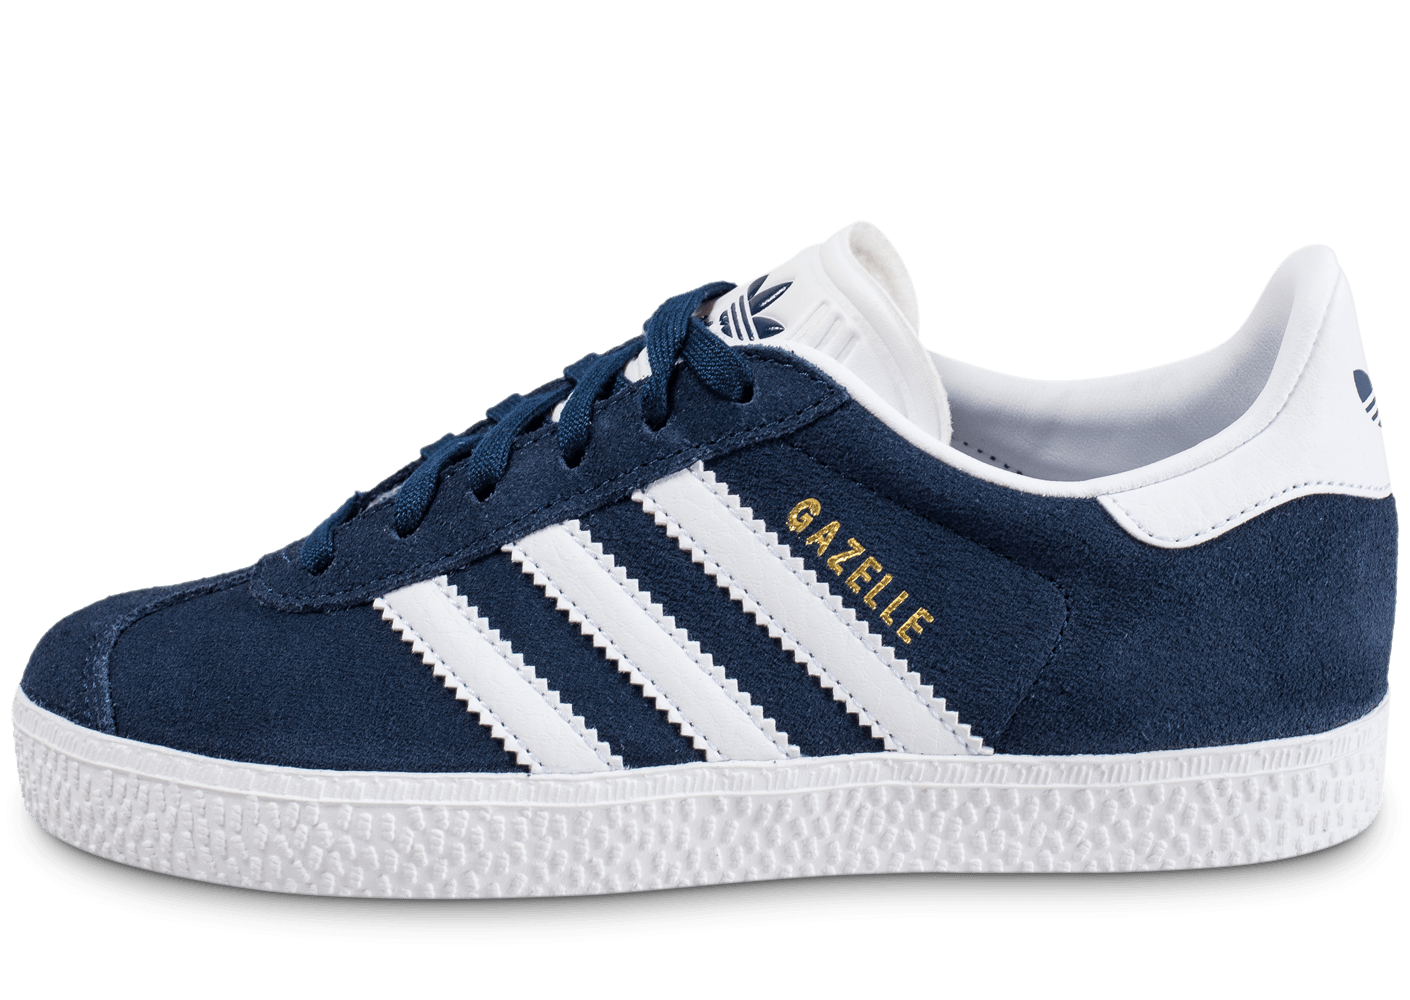 adidas gazelle enfant bleu marine chaussures adidas. Black Bedroom Furniture Sets. Home Design Ideas